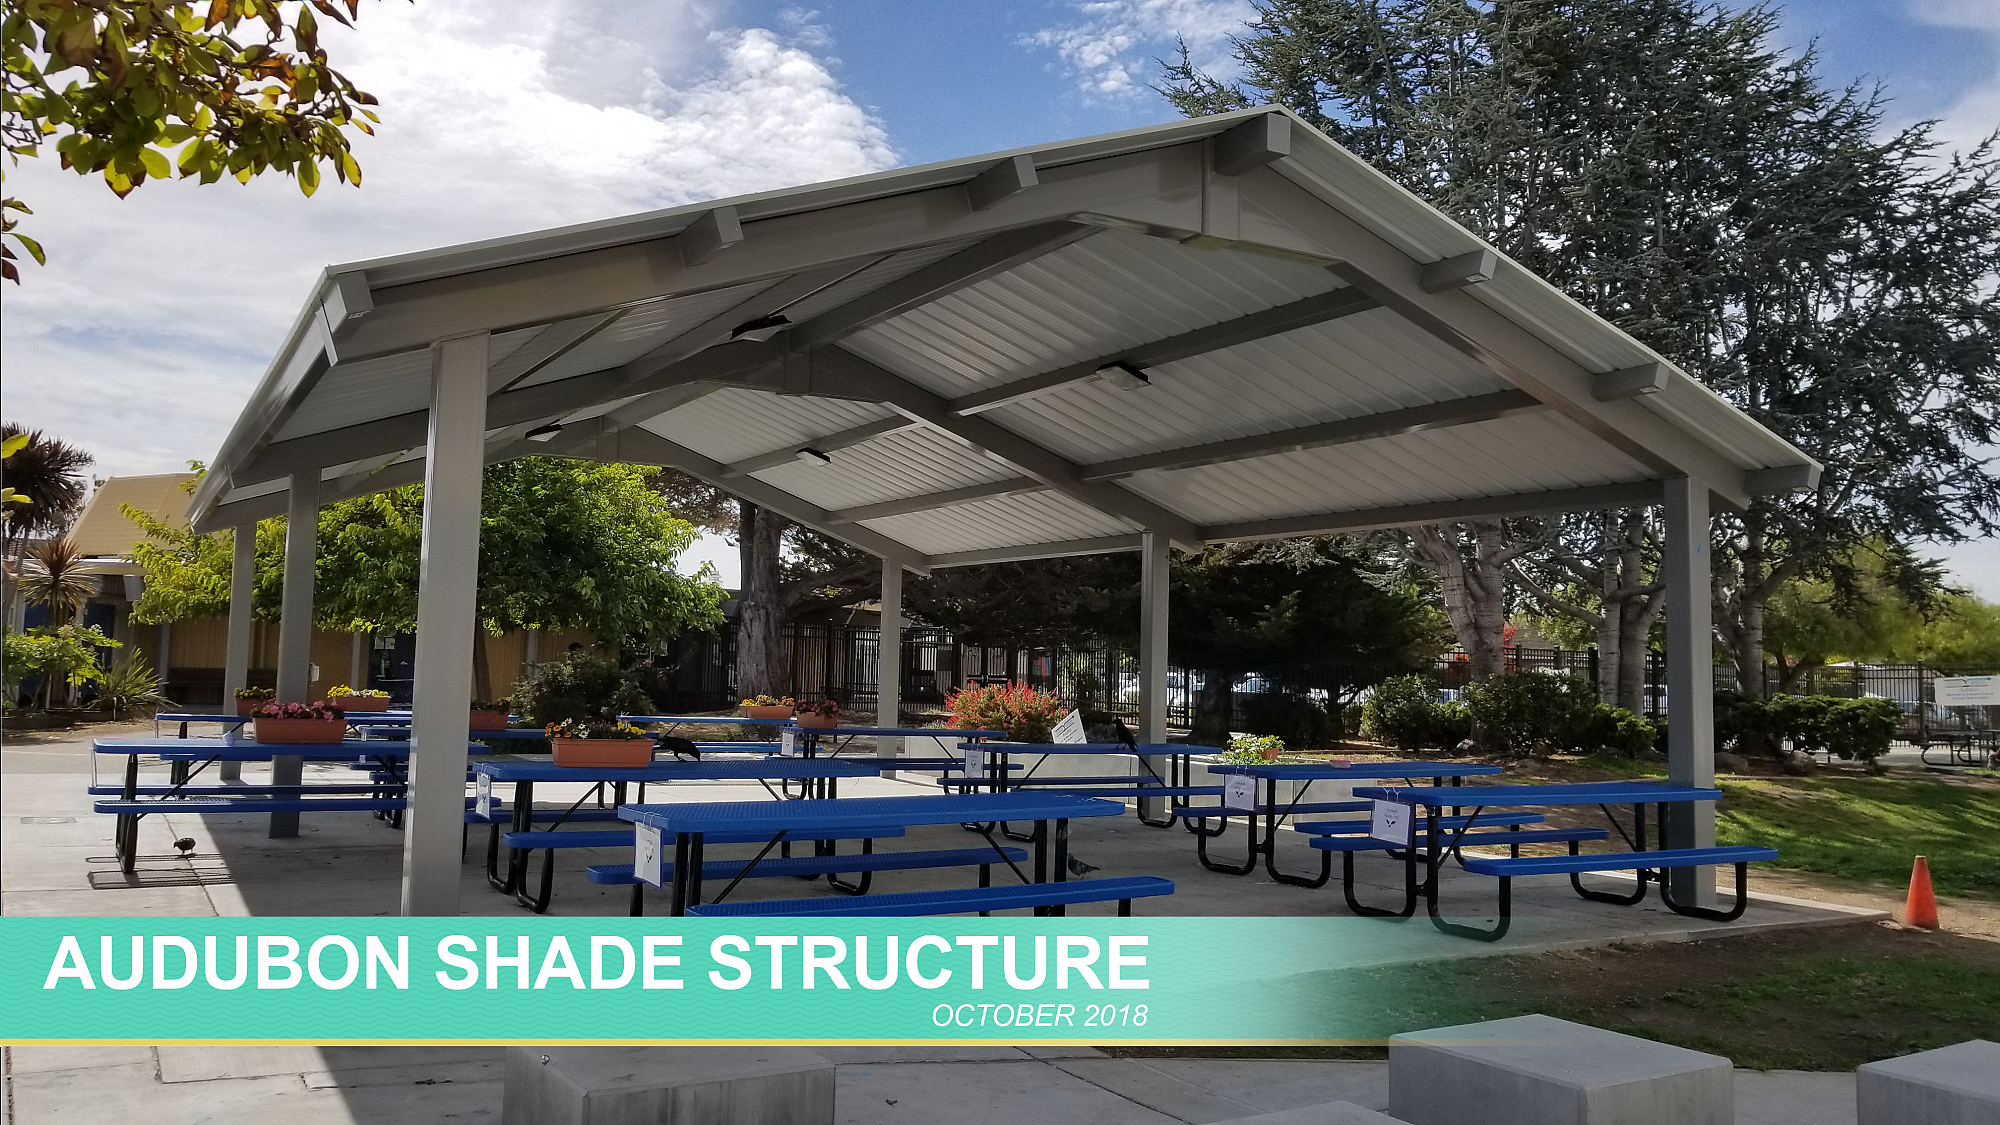 San Mateo Foster City School District – Audubon Shade Structure Within Audubon Calendars 2021 Foster City